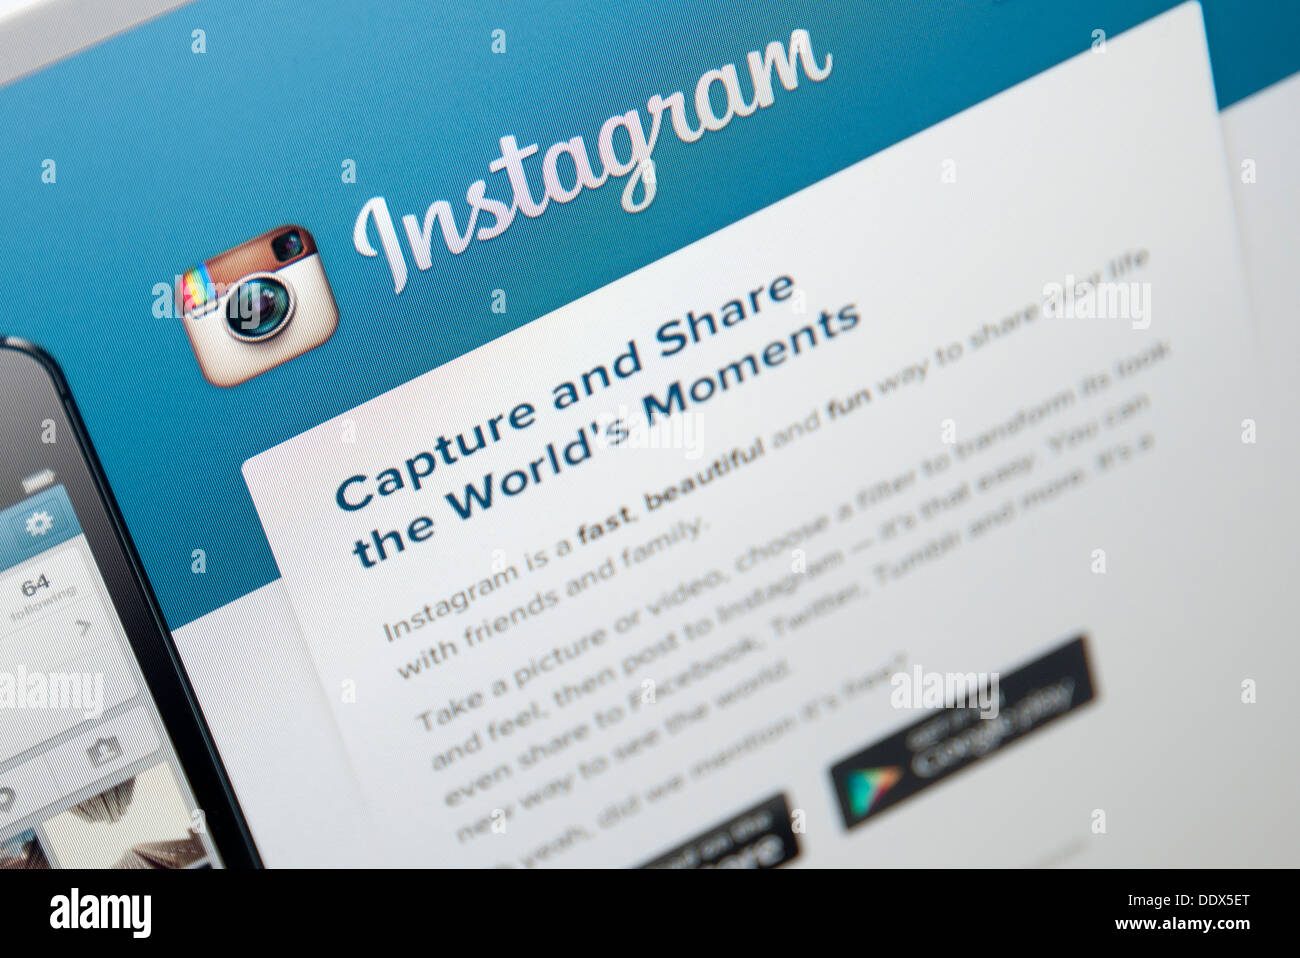 instagram web page - Stock Image